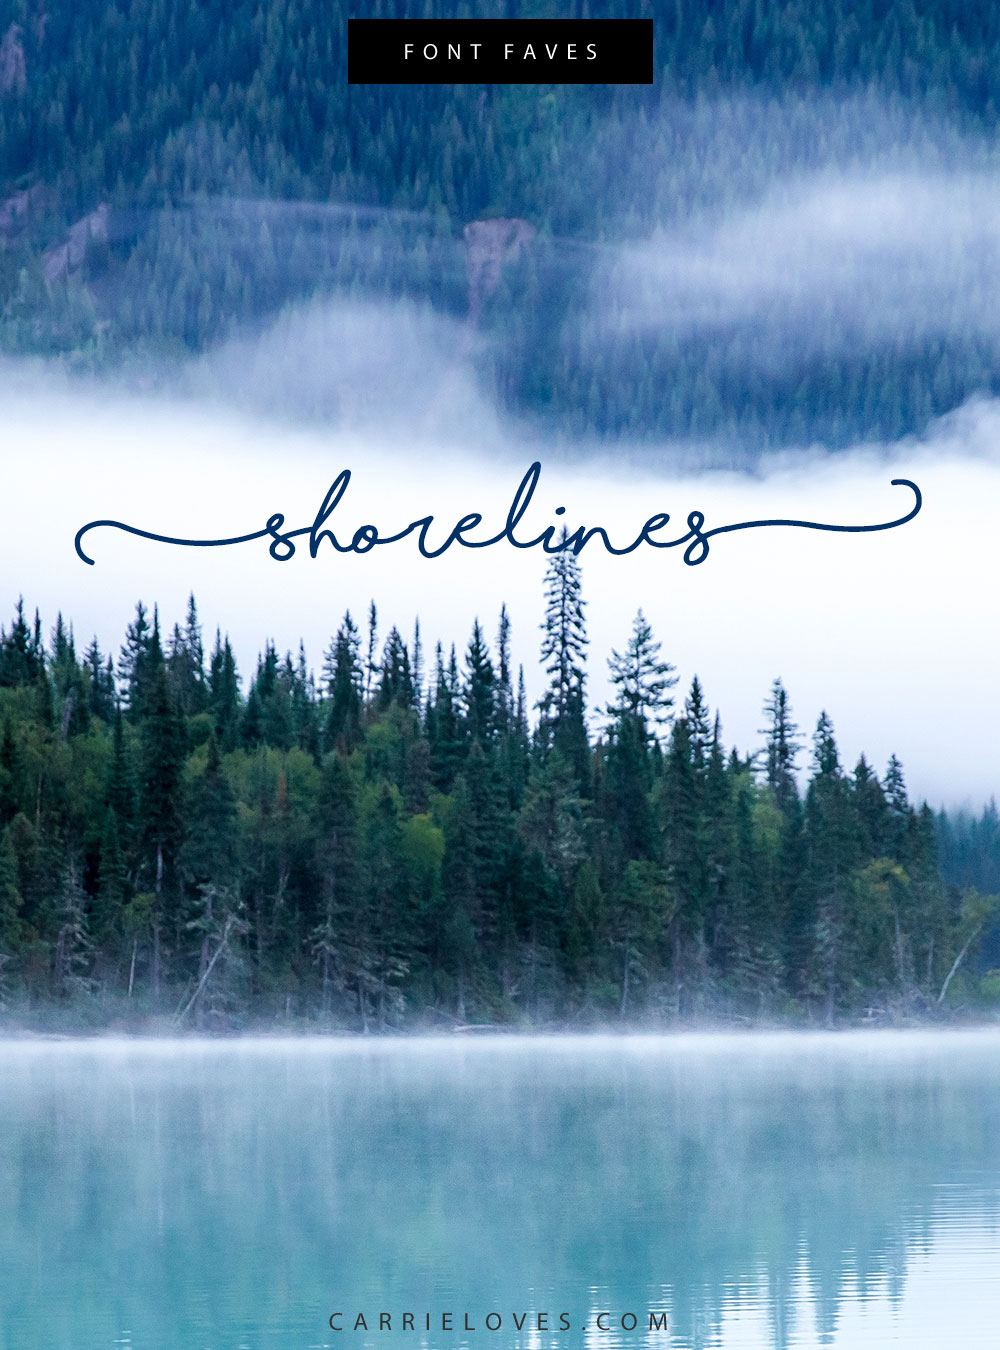 Font Faves Shorelines - Carrie Loves Blog